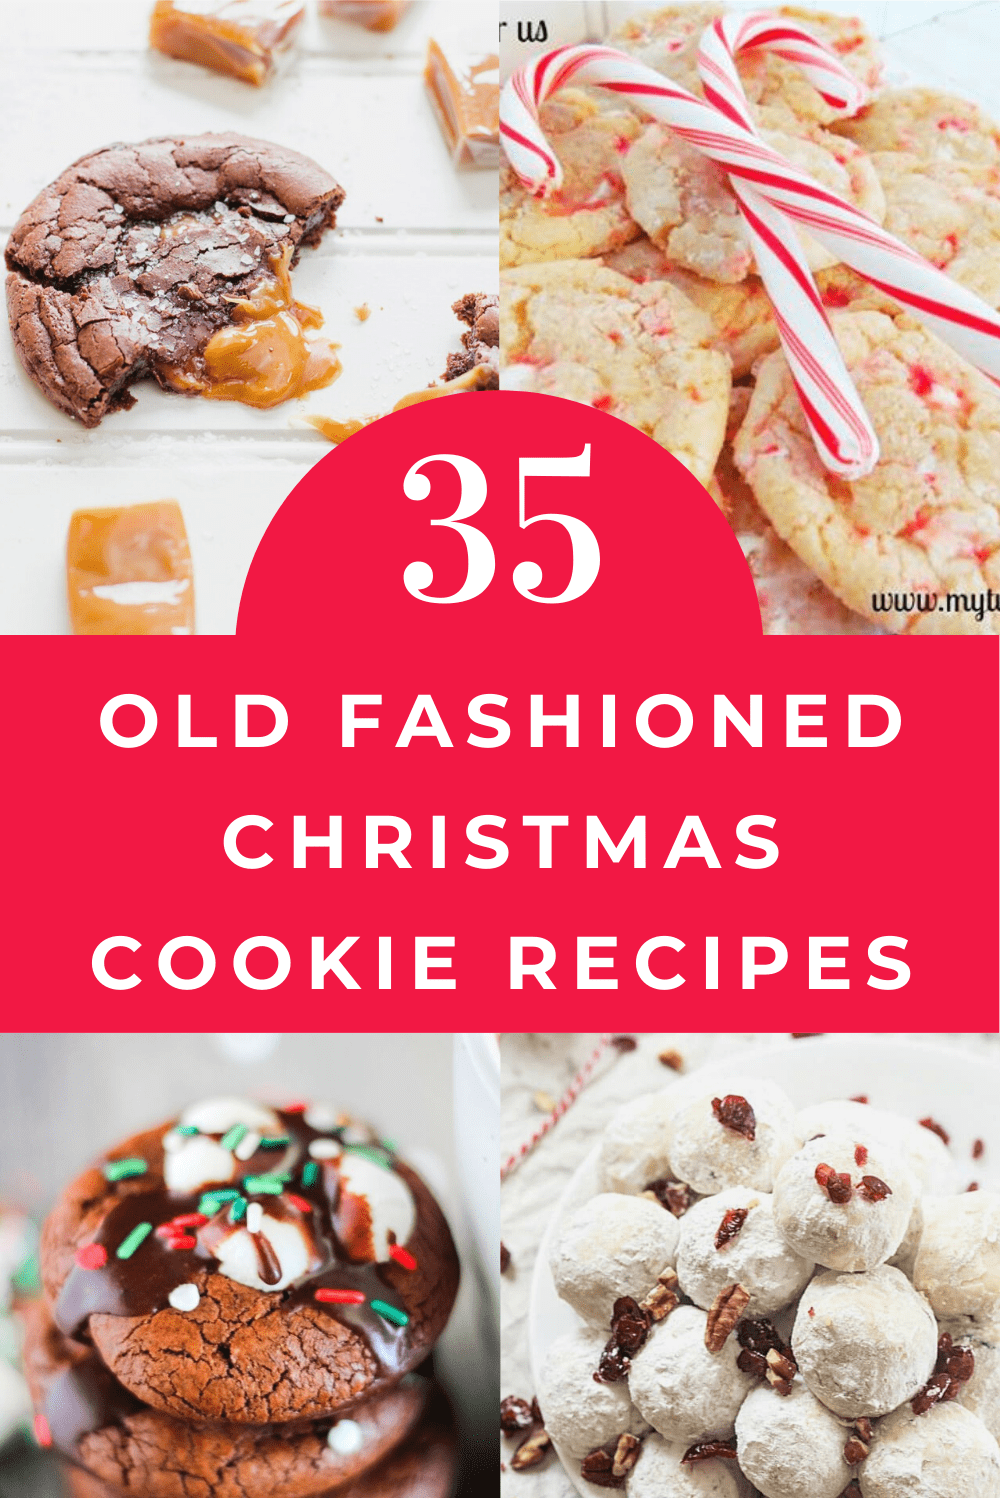 old fashioned Christmas cookies, Christmas Cookies, traditional Christmas treats, Christmas Chocolate Cookies, Christmas Cookies, Christmas Cookie Recipes